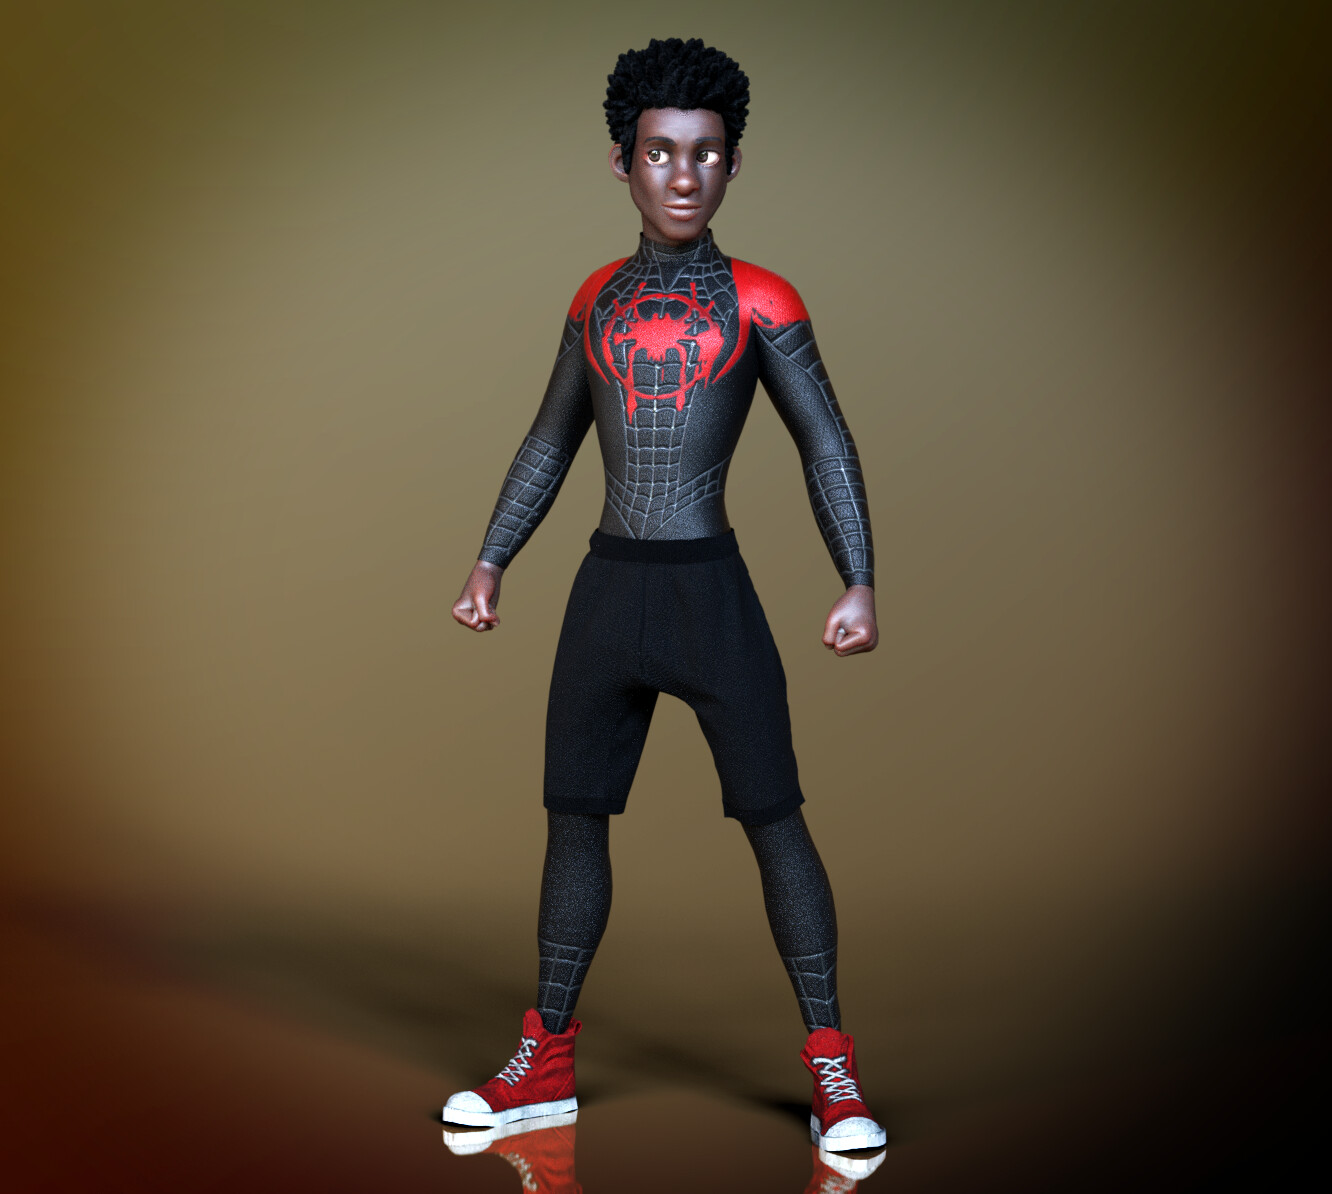 SpiderVerse Fanart - CC3 Adam Base Clothes + Customized ColorIDs (CC Appearance Editor)